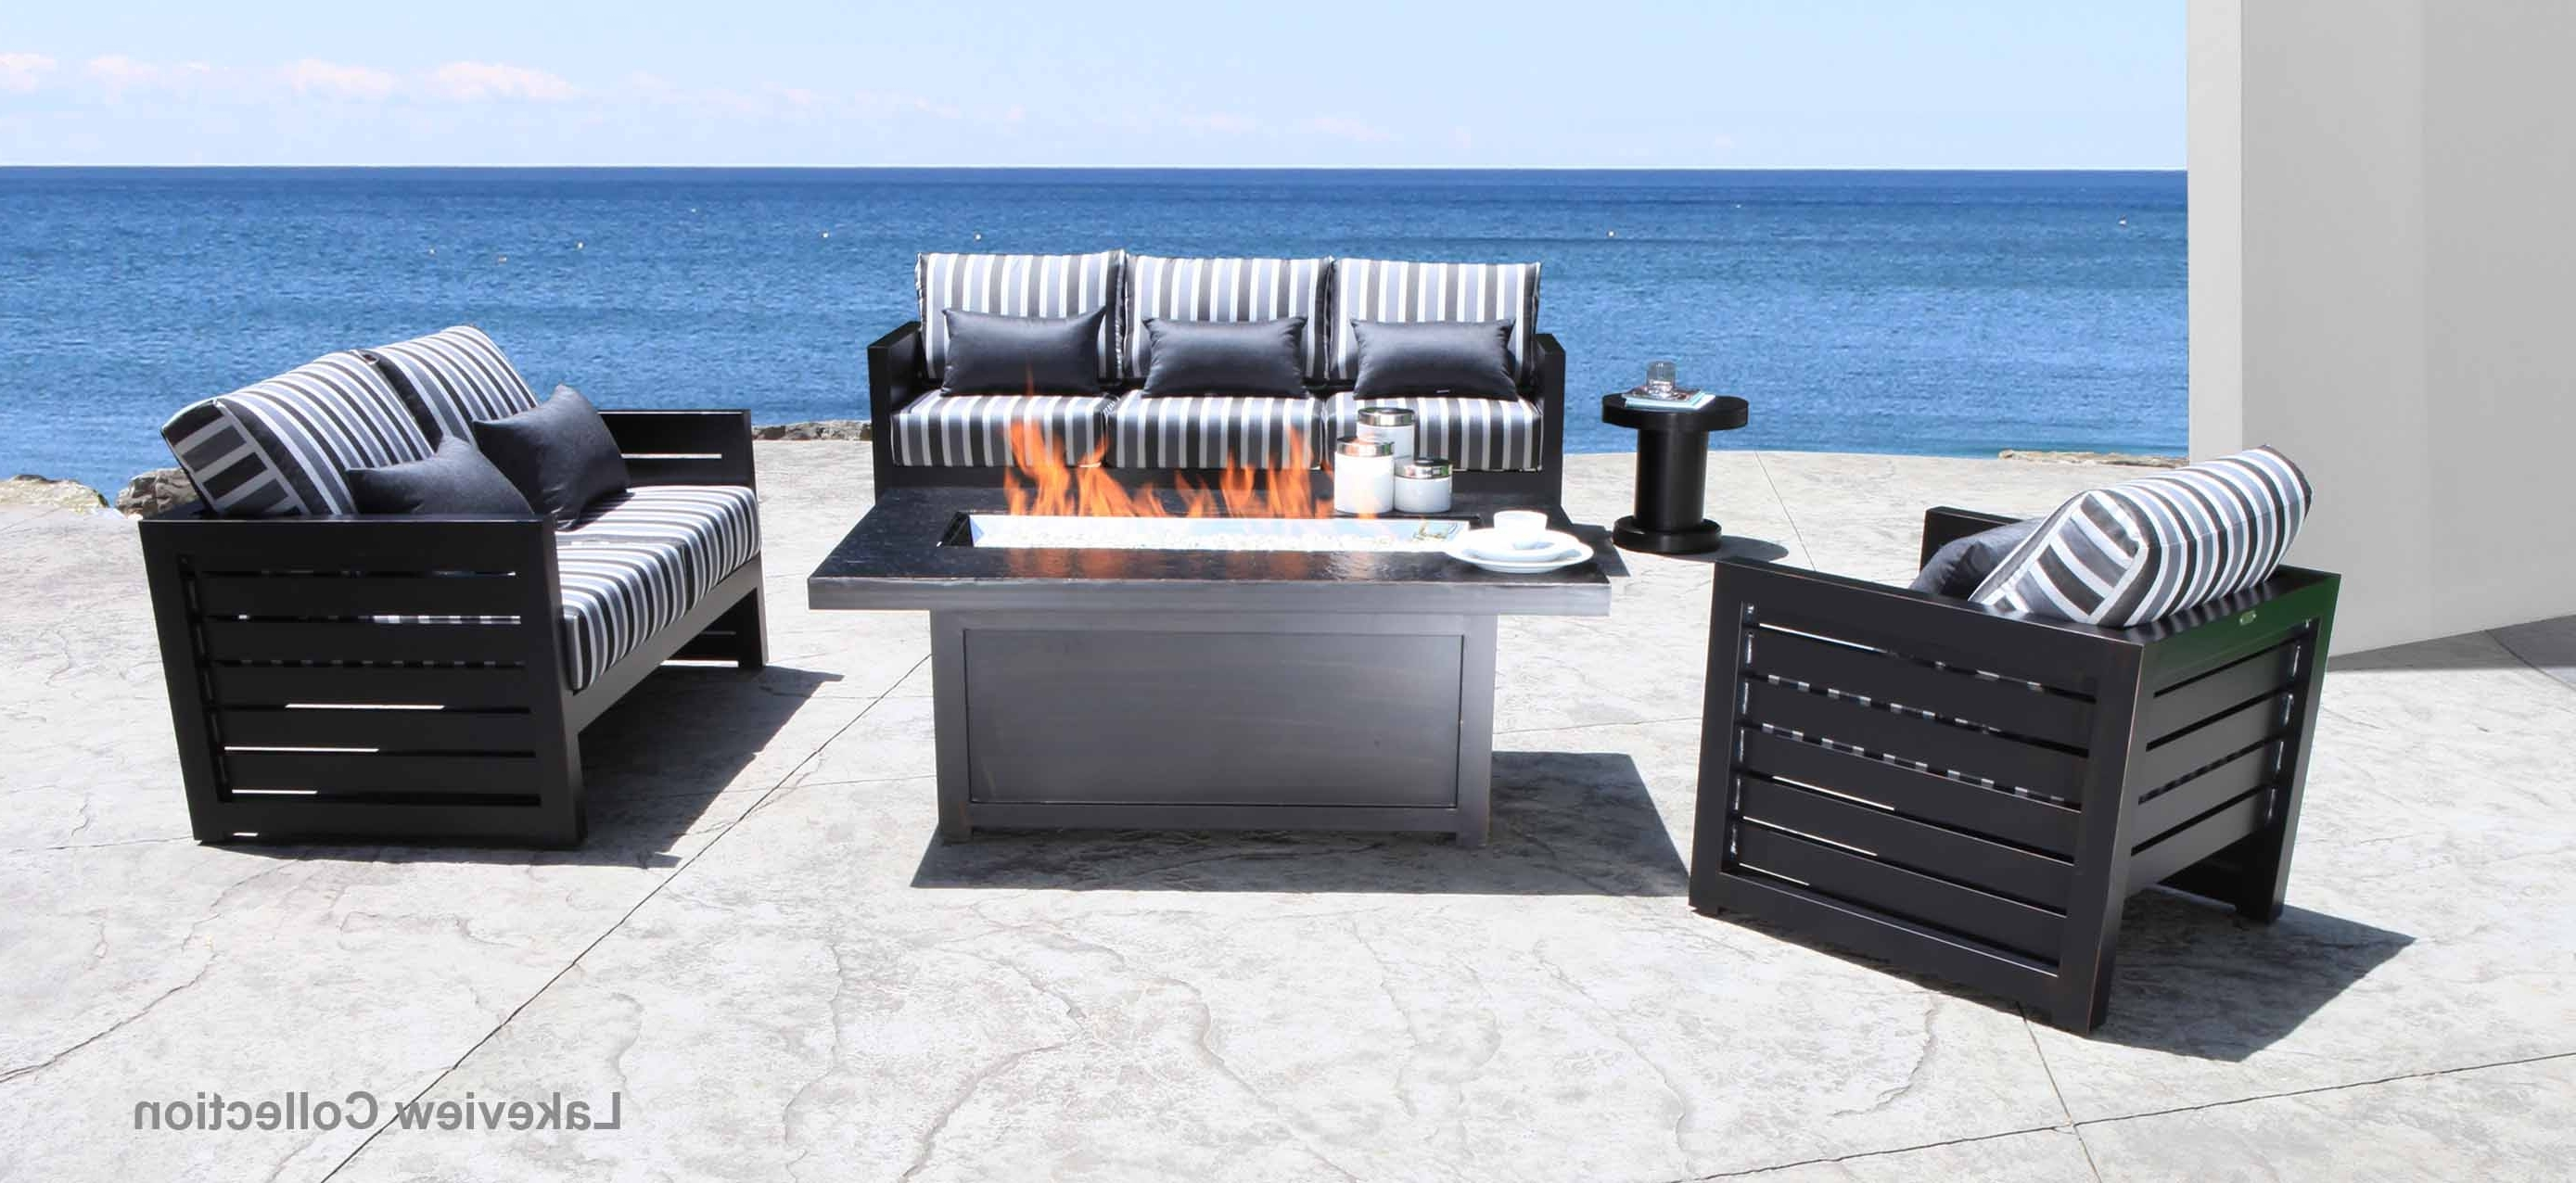 Shop Patio Furniture At Cabanacoast® Within Well Liked Edmonton Patio Conversation Sets (View 11 of 15)